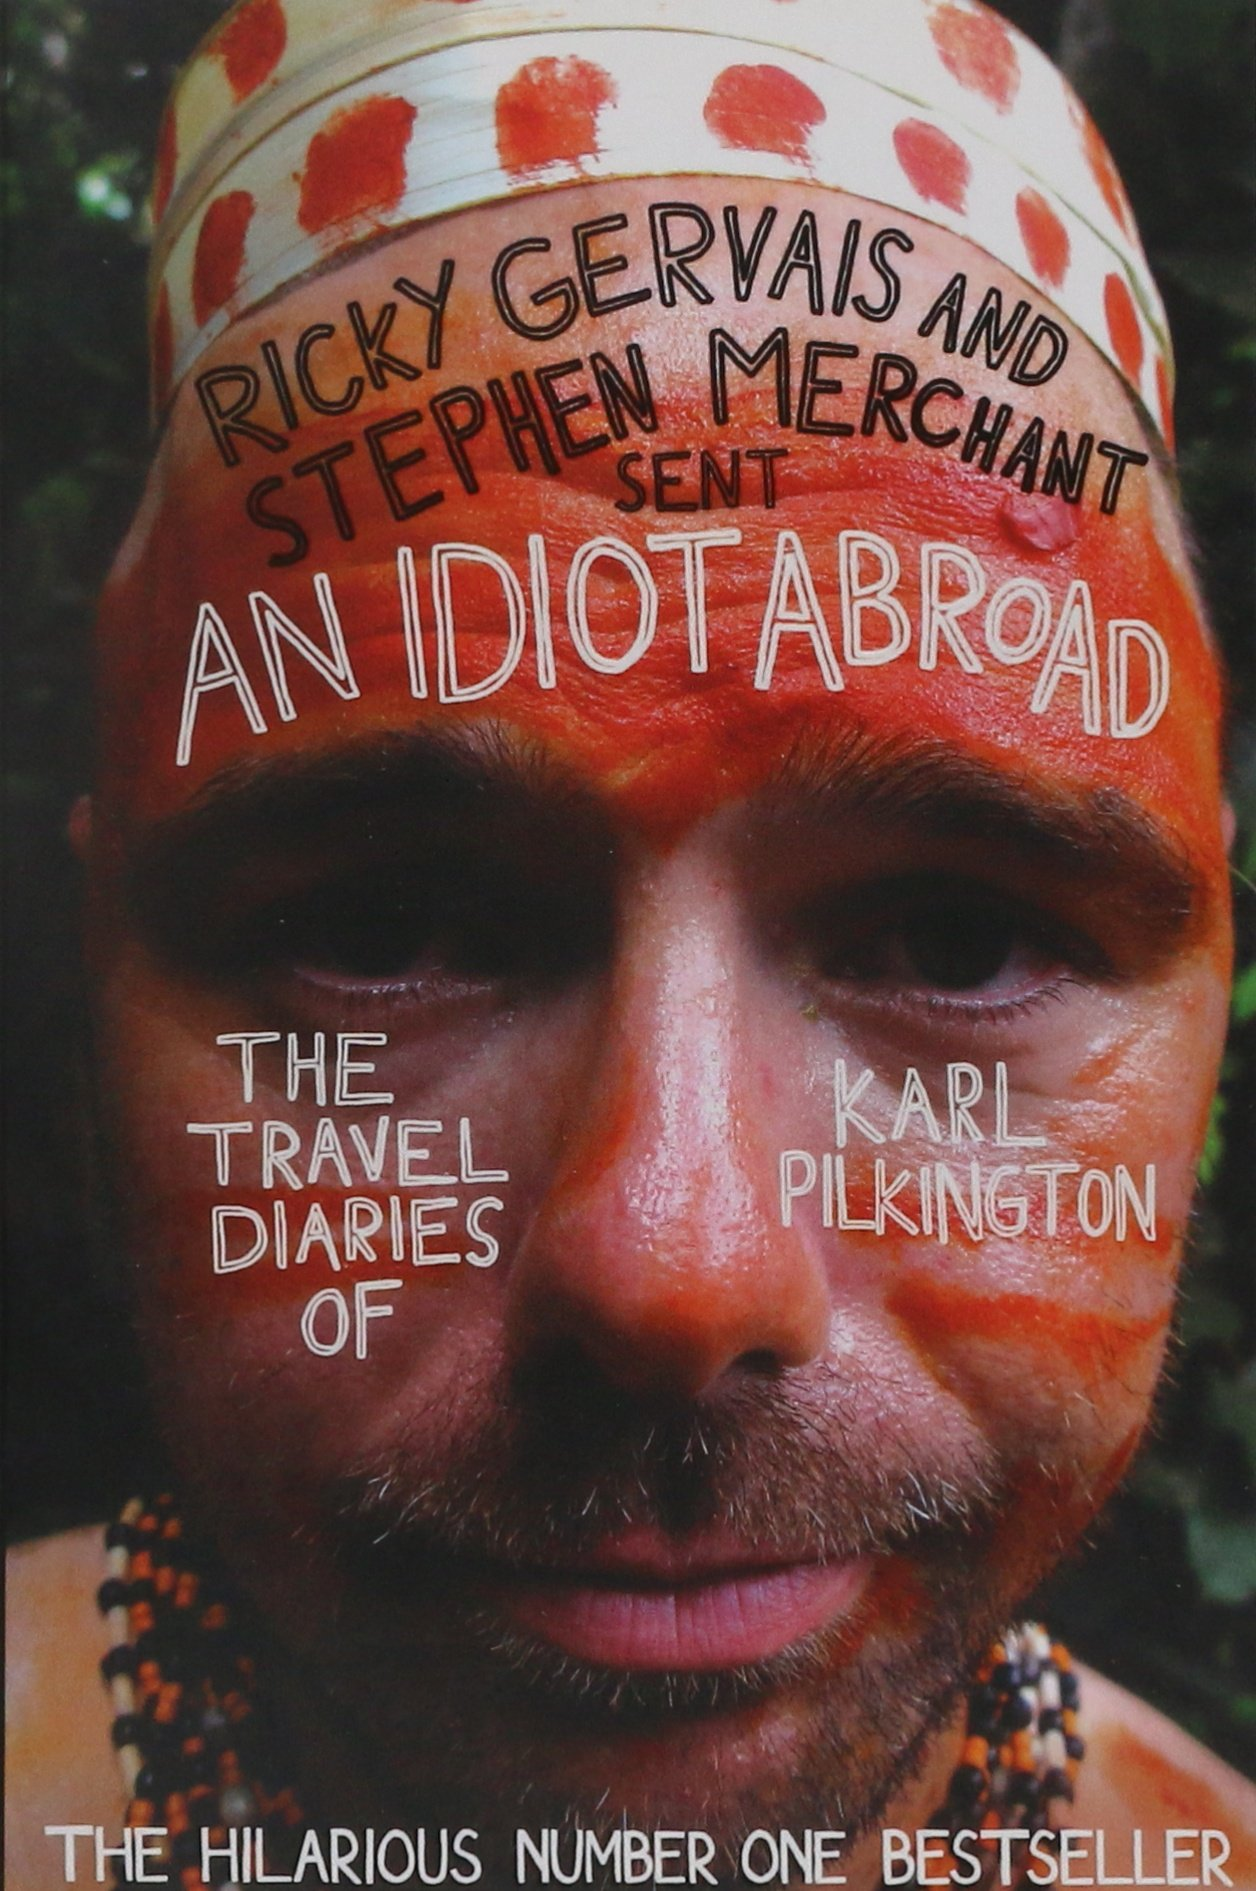 An idiot abroad the travel diaries of karl pilkington amazon an idiot abroad the travel diaries of karl pilkington amazon karl pilkington ricky gervais stephen merchant 8601404262845 books m4hsunfo